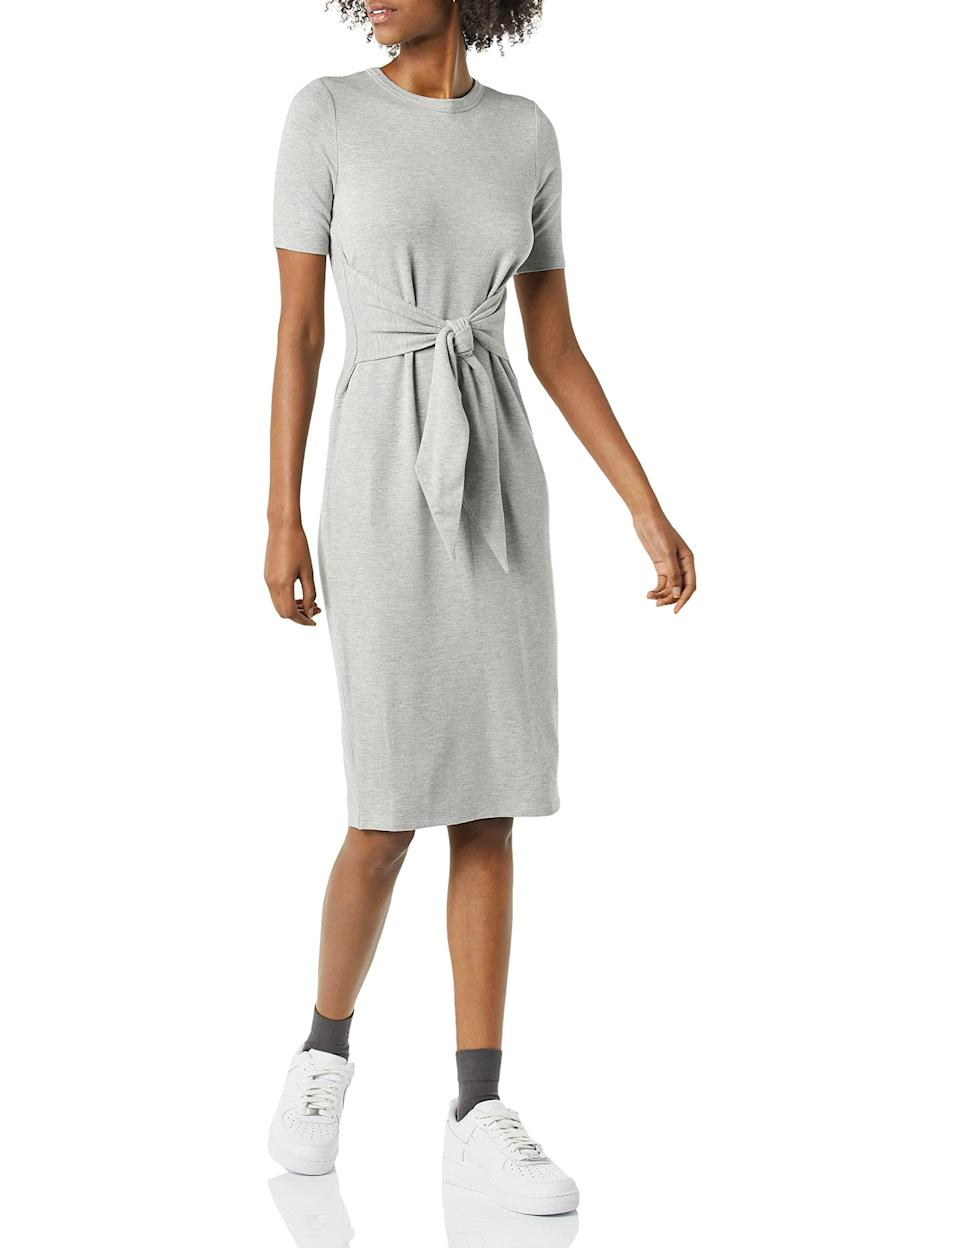 """<br><br><strong>Daily Ritual</strong> Supersoft Terry Tie-Front Midi Dress, $, available at <a href=""""https://amzn.to/3ArxBJi"""" rel=""""nofollow noopener"""" target=""""_blank"""" data-ylk=""""slk:Amazon"""" class=""""link rapid-noclick-resp"""">Amazon</a>"""